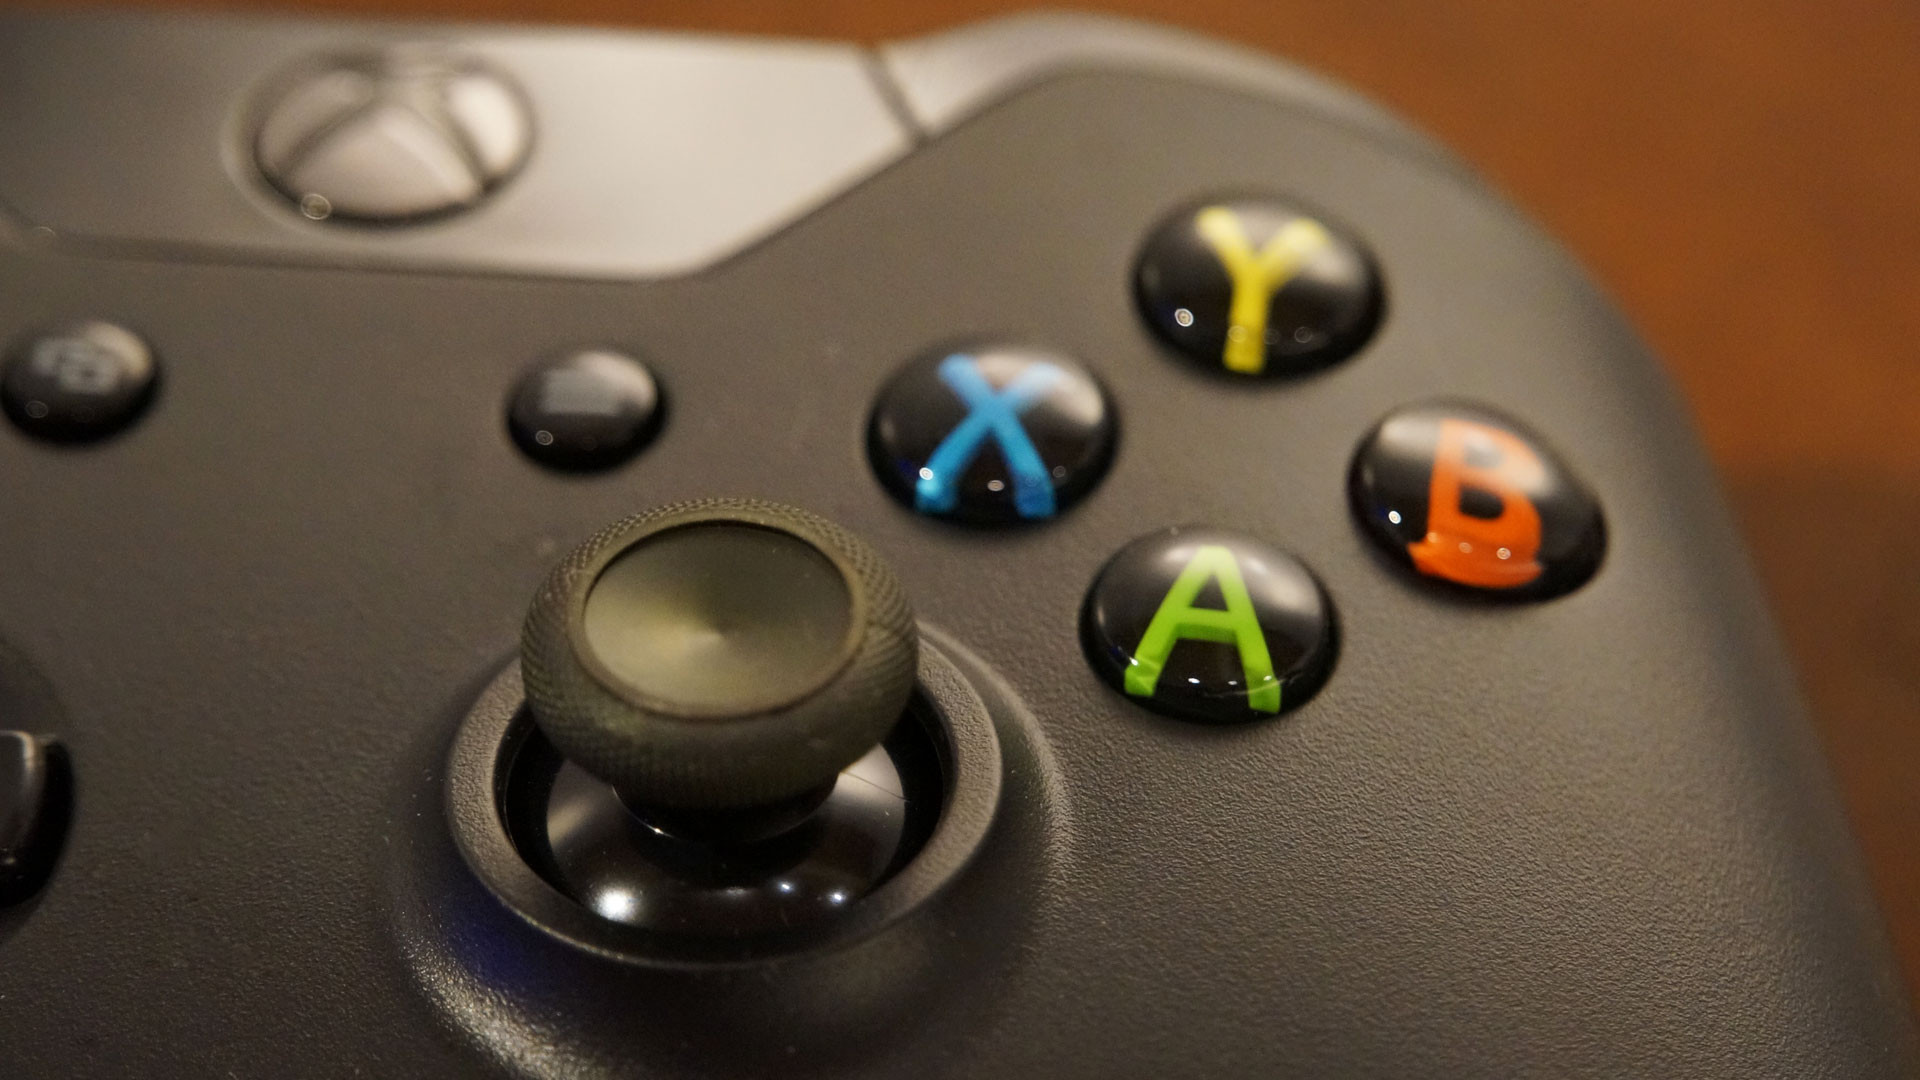 Gamer Thug Controller Hd Wallpapers: Wallpapers For Xbox One (80+ Images